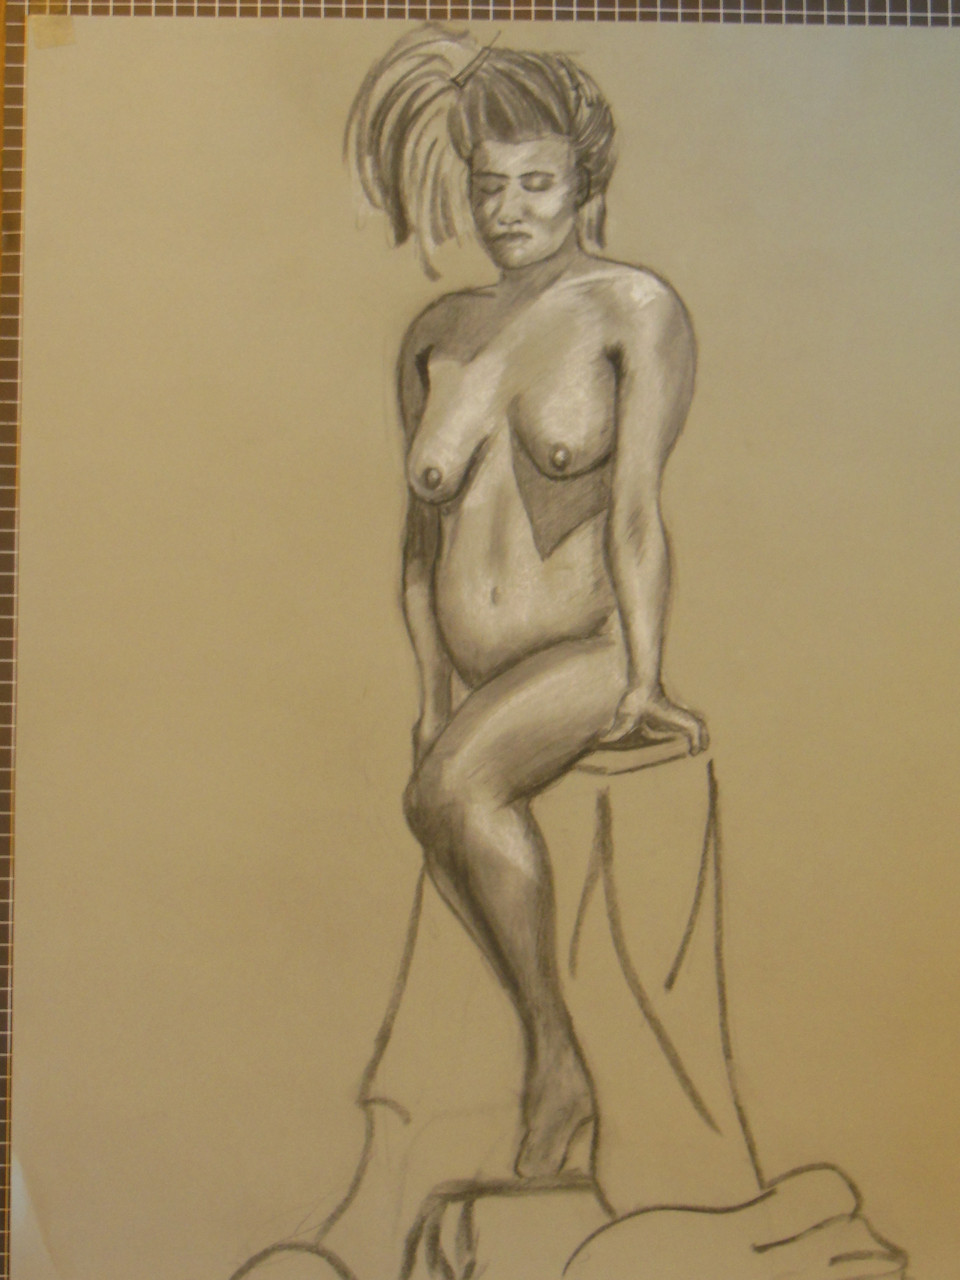 Nude Drawing: Charcoal & pastel on grey paper. 20